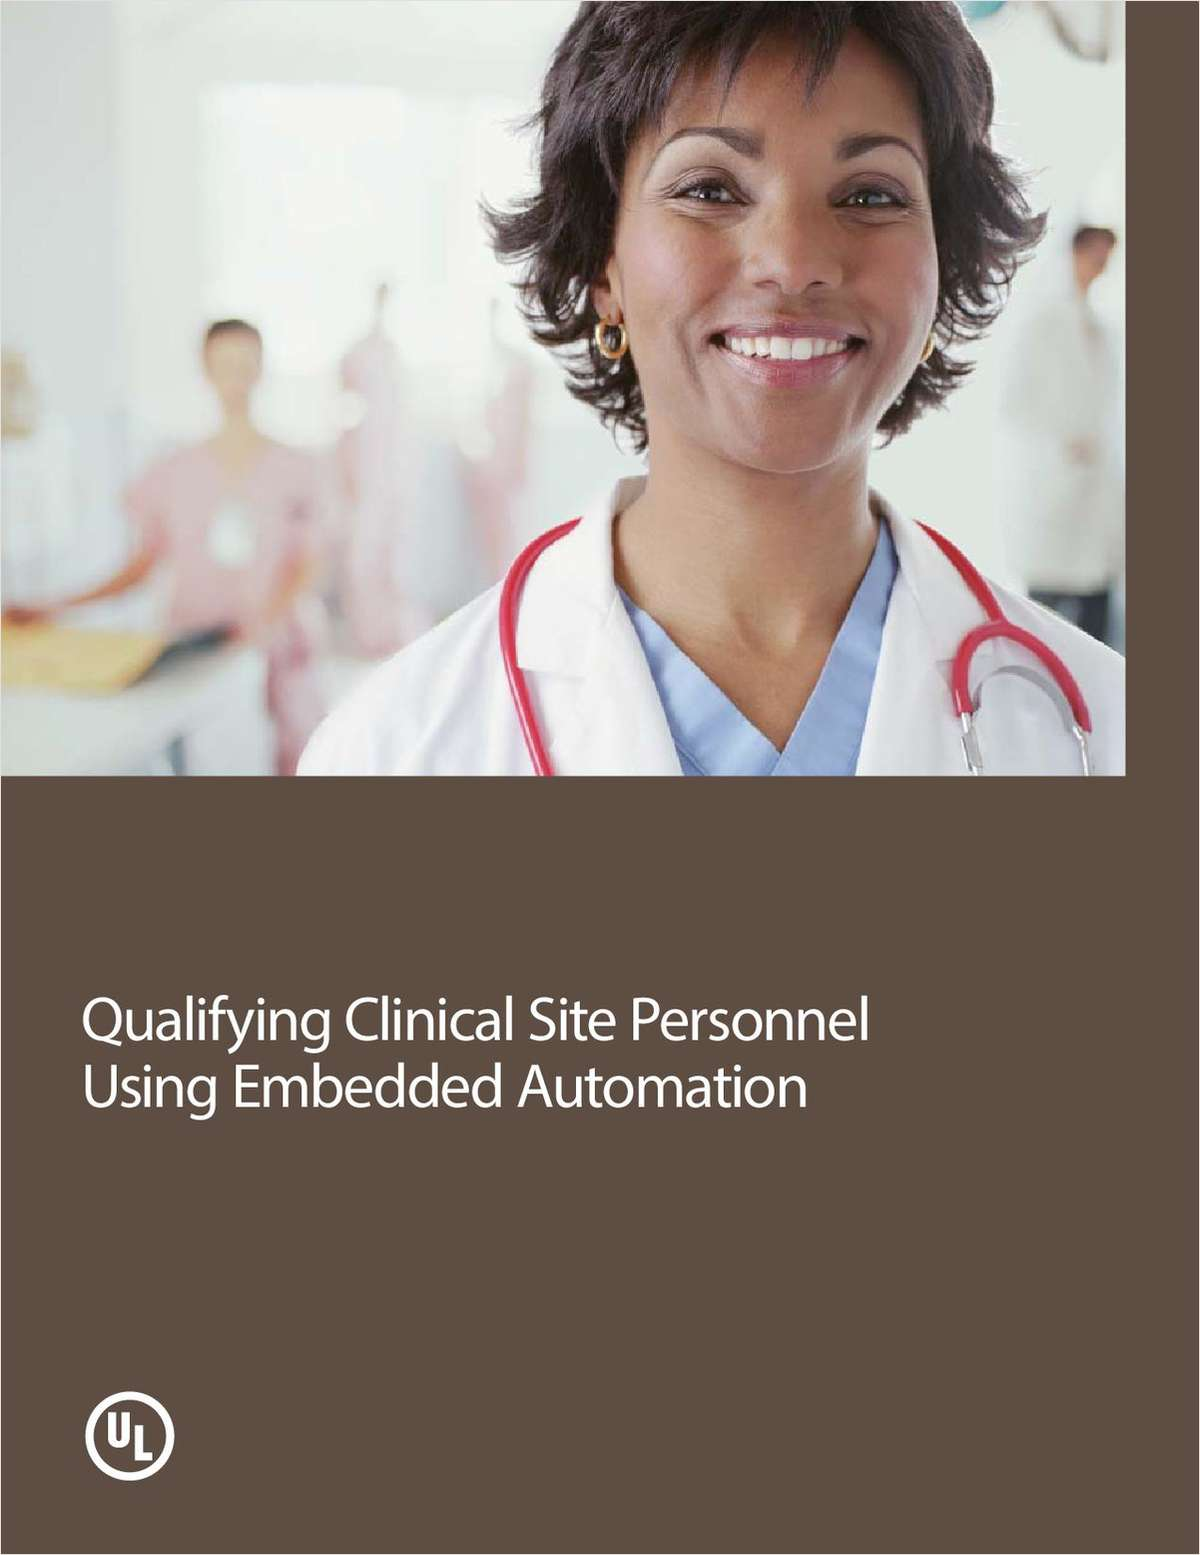 Qualifying Clinical Site Personnel Using Embedded Automation